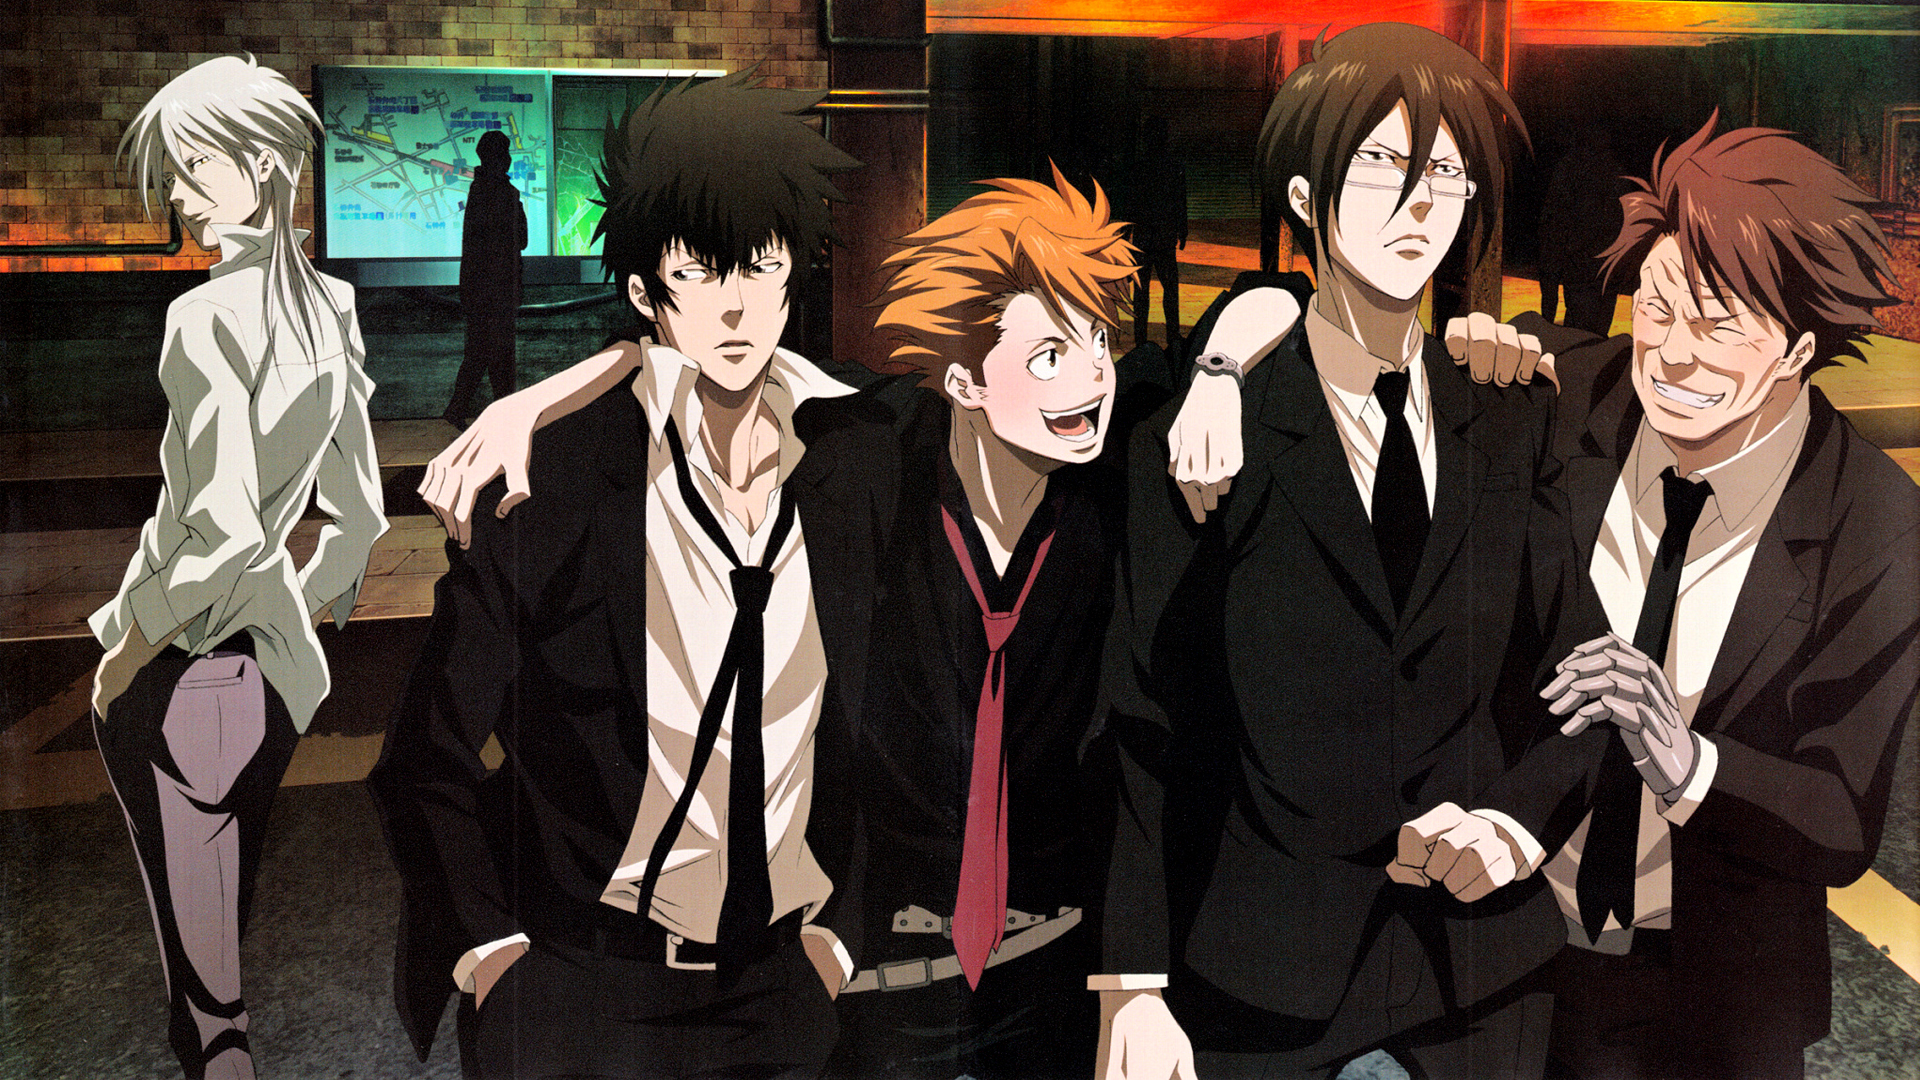 Psycho Pass Main Members Hd Wallpaper Background Image